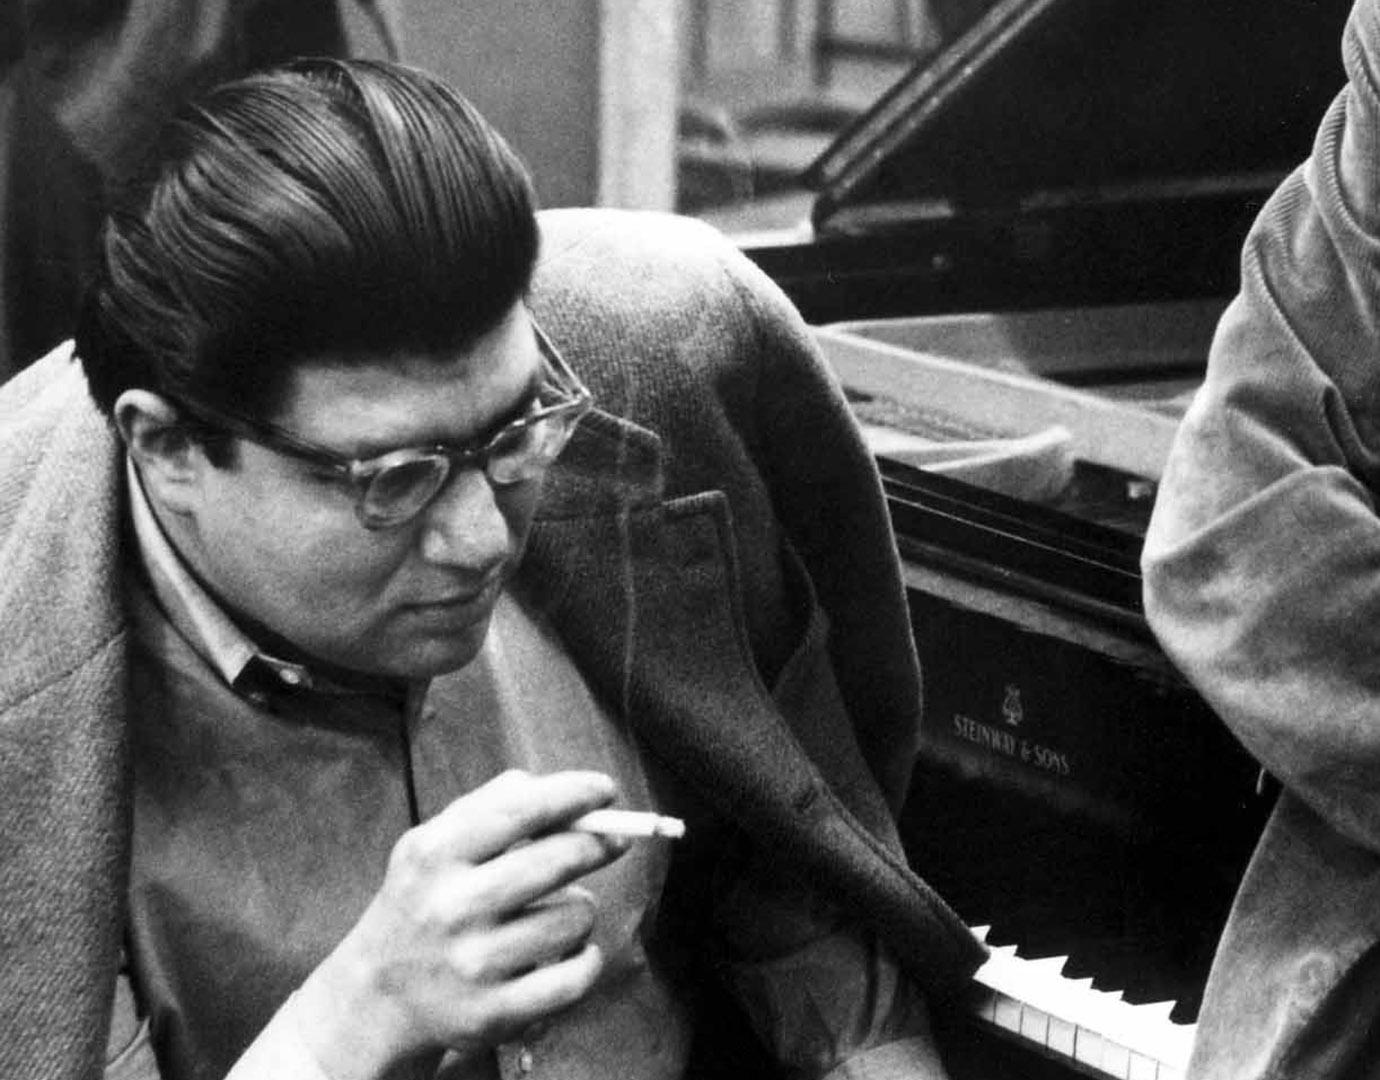 Morton Feldman box set forthcoming - The Wire